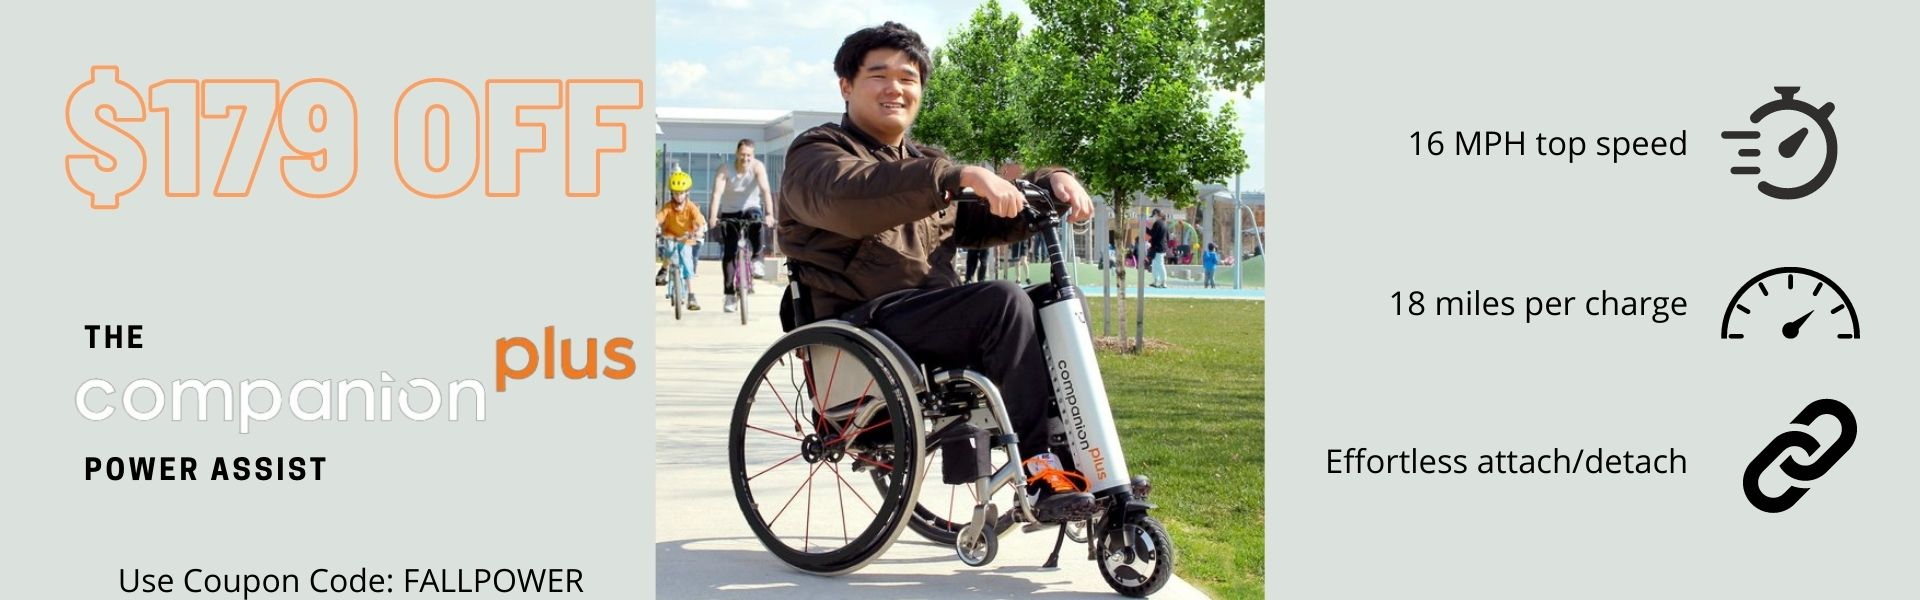 Power Assist for wheelchairs, users with disabilities, Cheelcare Companion Plus